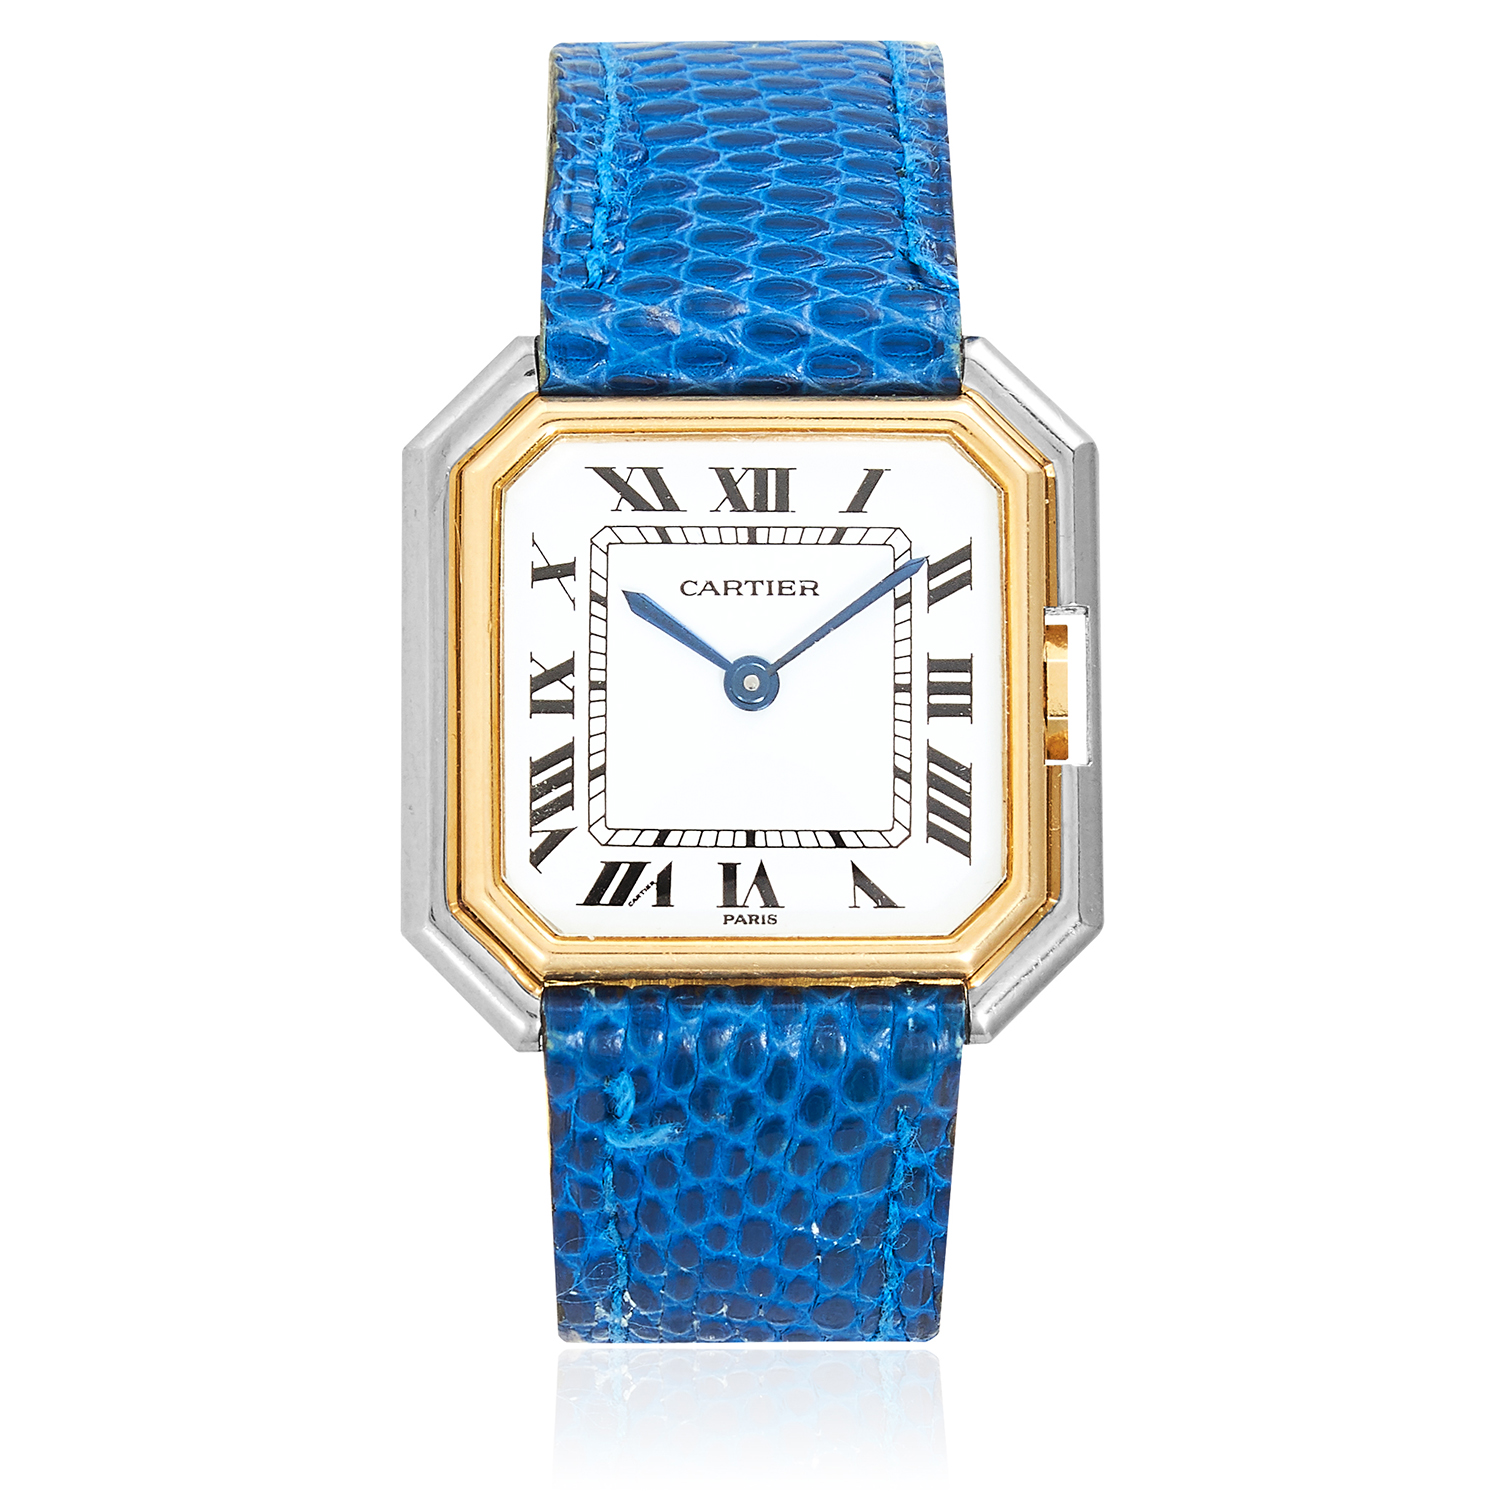 Los 351 - A 'CEINTURE' LADIES WRISTWATCH, CARTIER in 18ct white and yellow gold, with white dial and blue